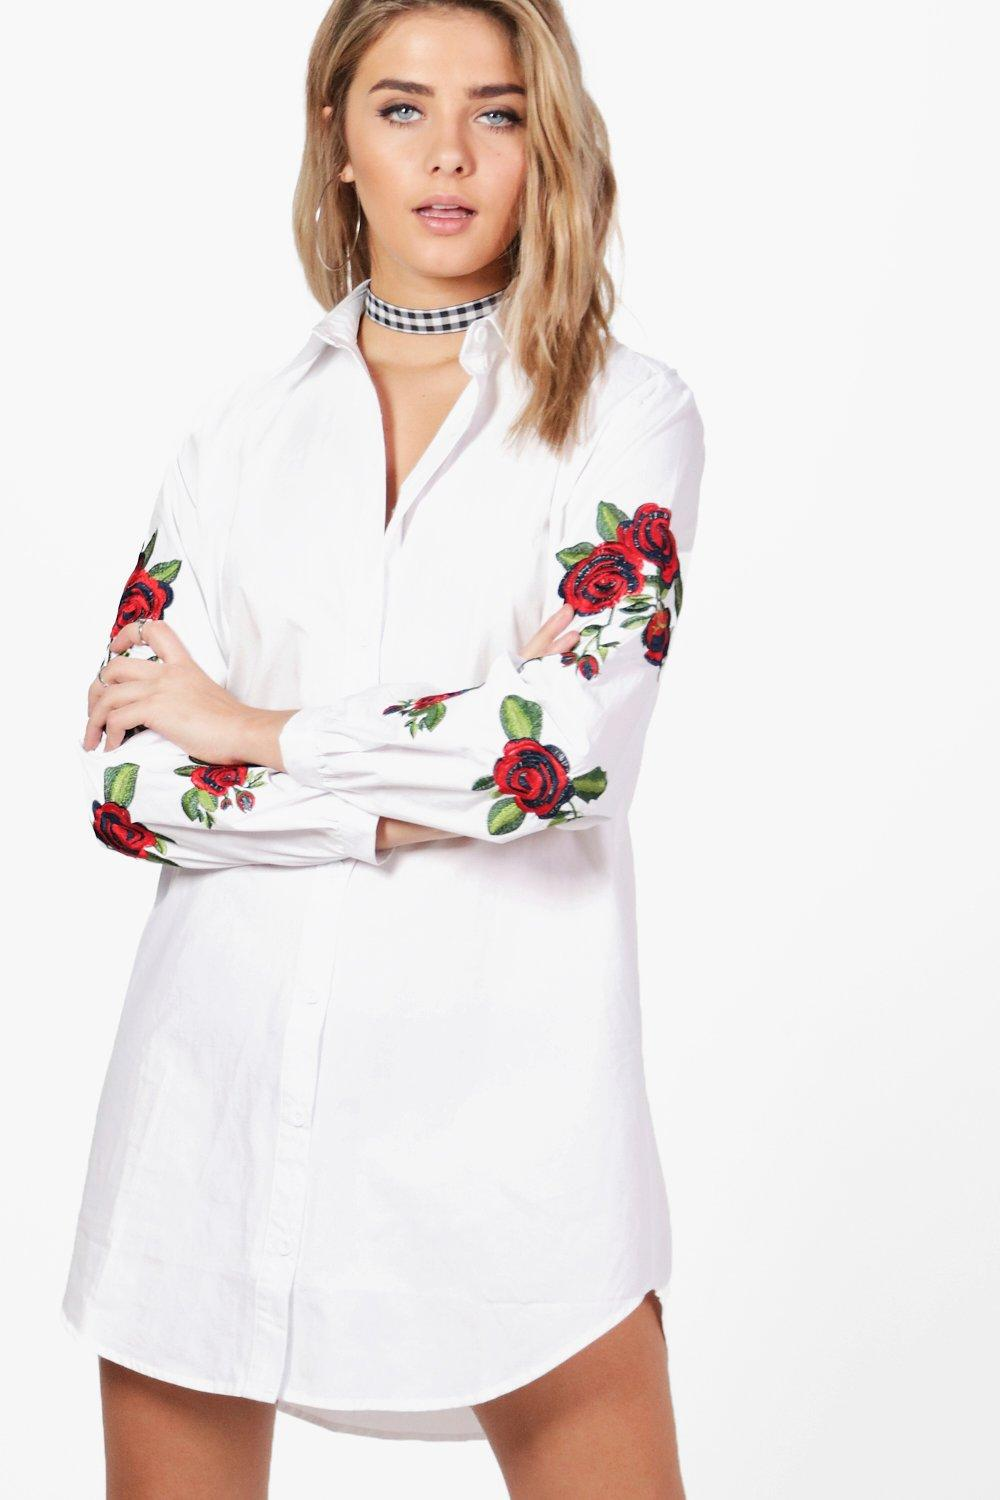 164c9437310c Womens White Floral Embroidered Shirt Dress. Hover to zoom